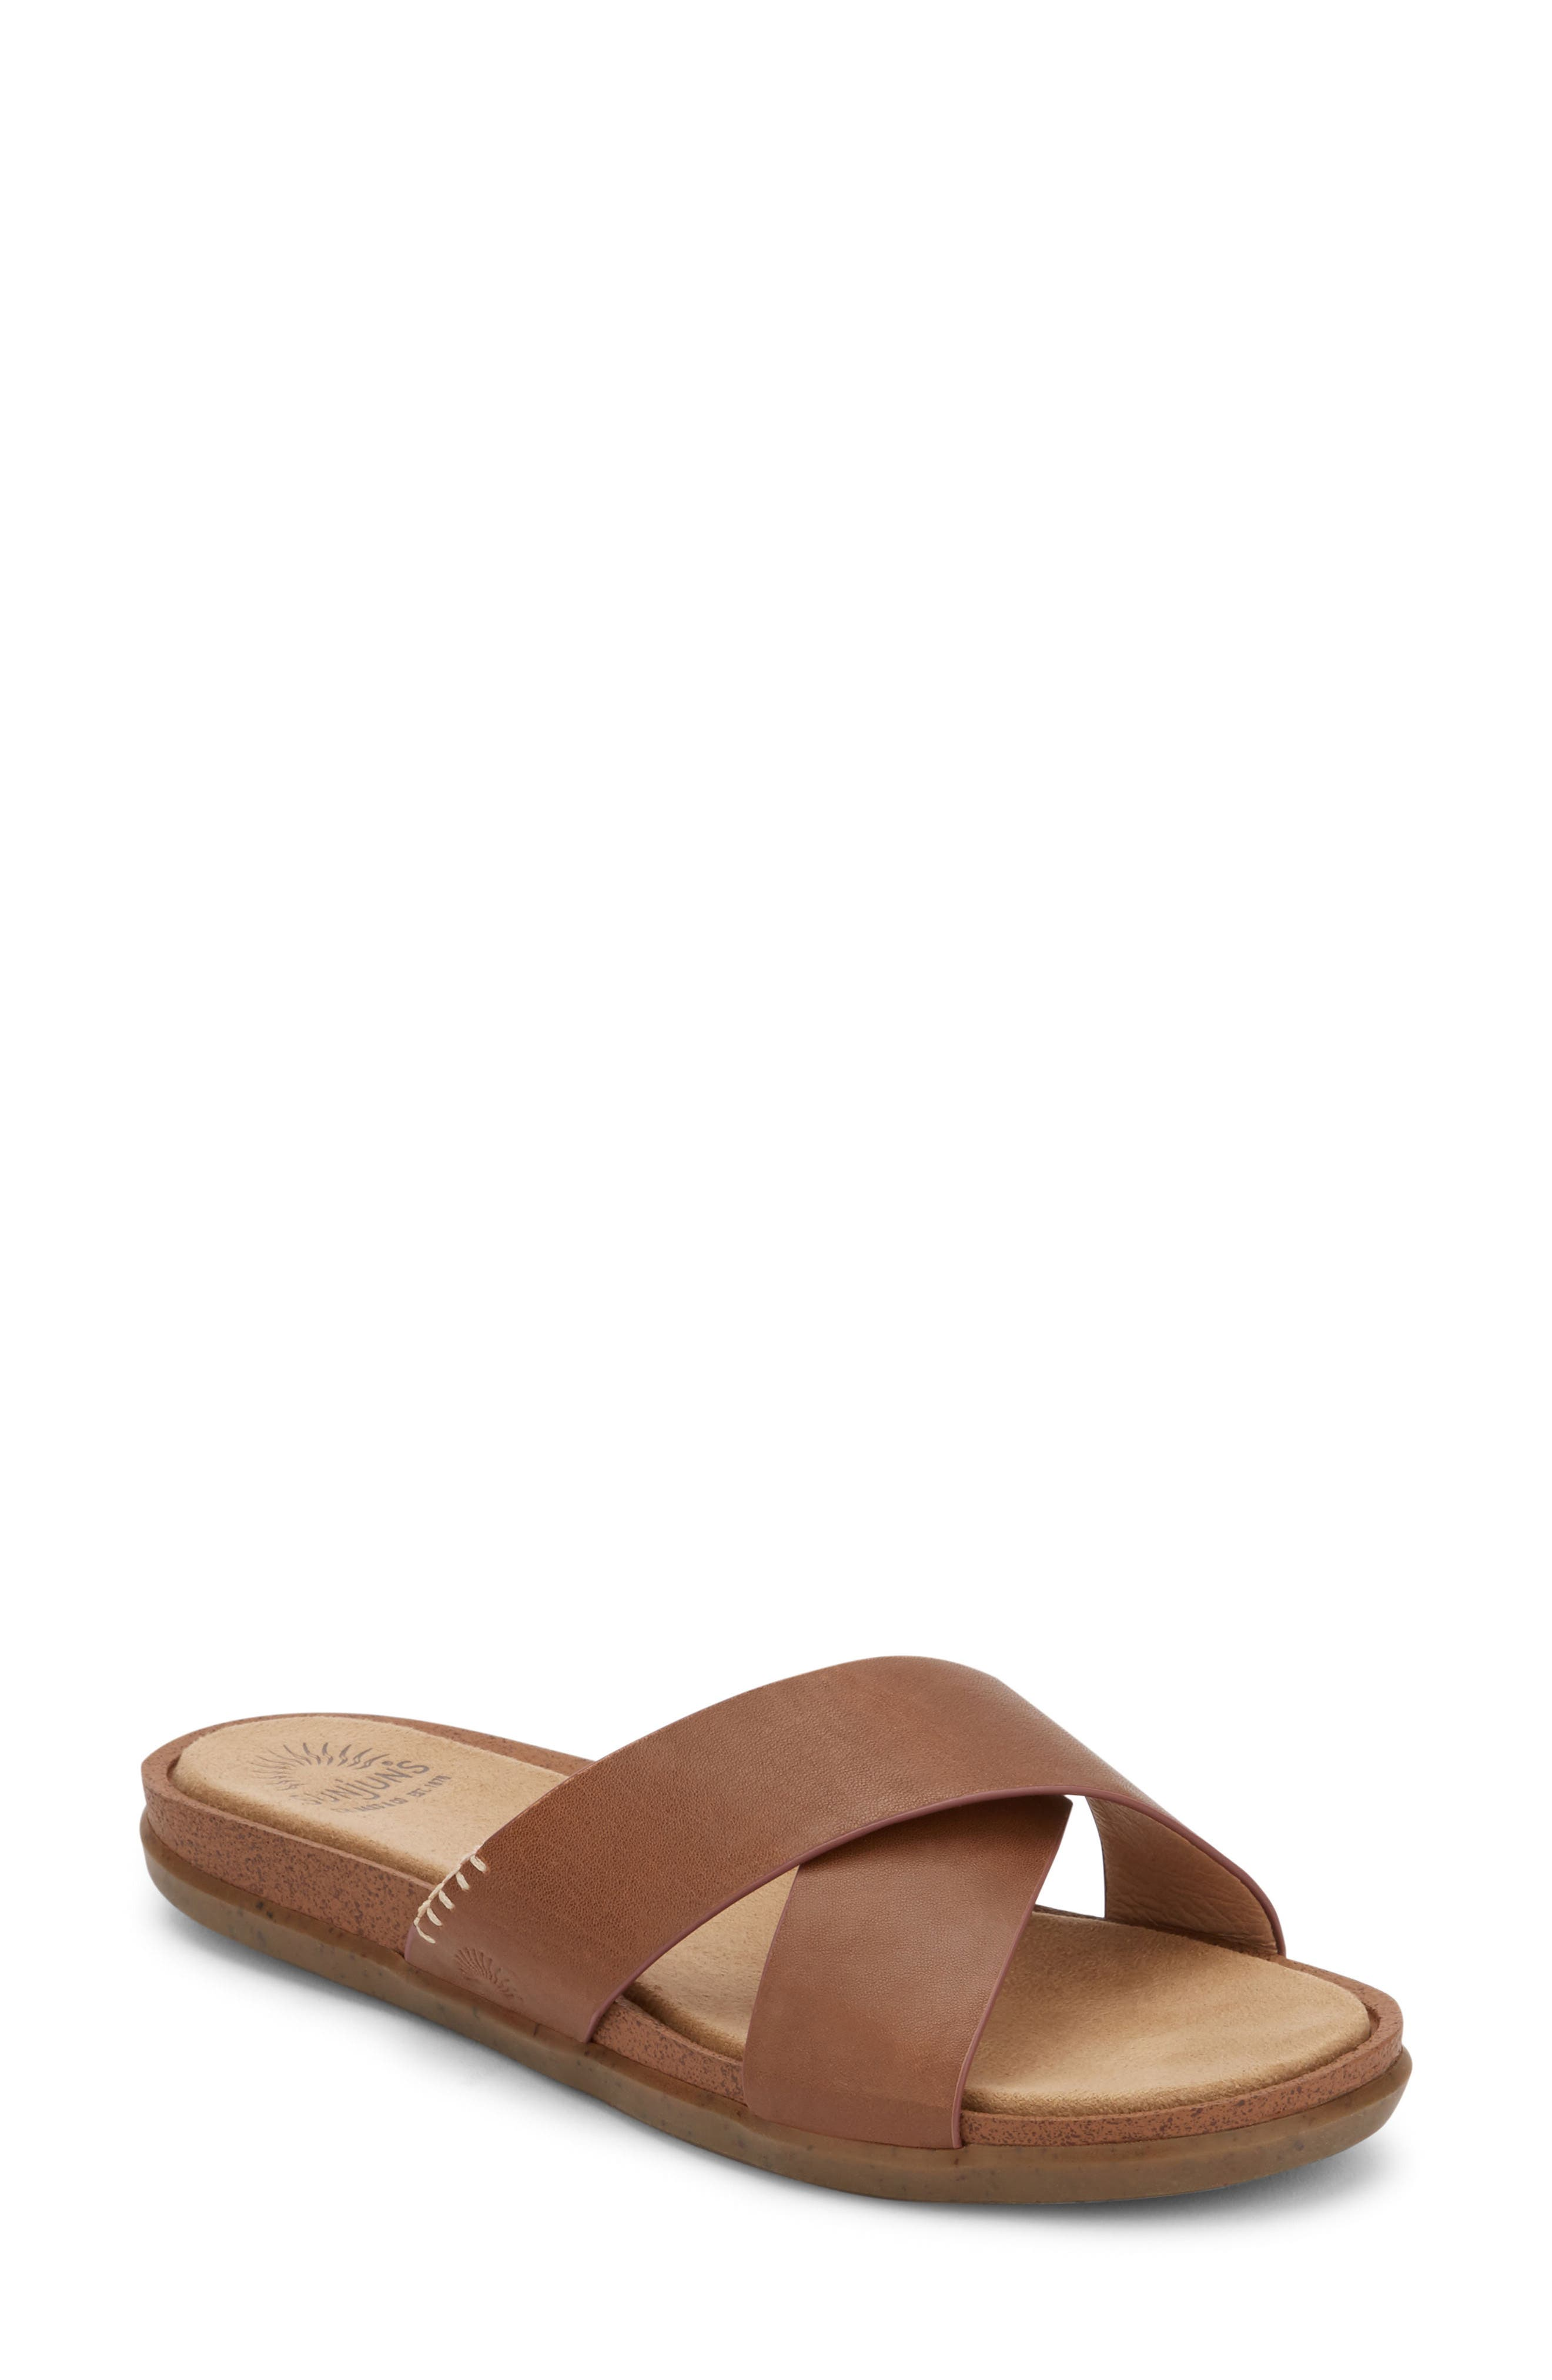 G.H. BASS & CO. Stella Slide Sandal in Berry Pink Suede